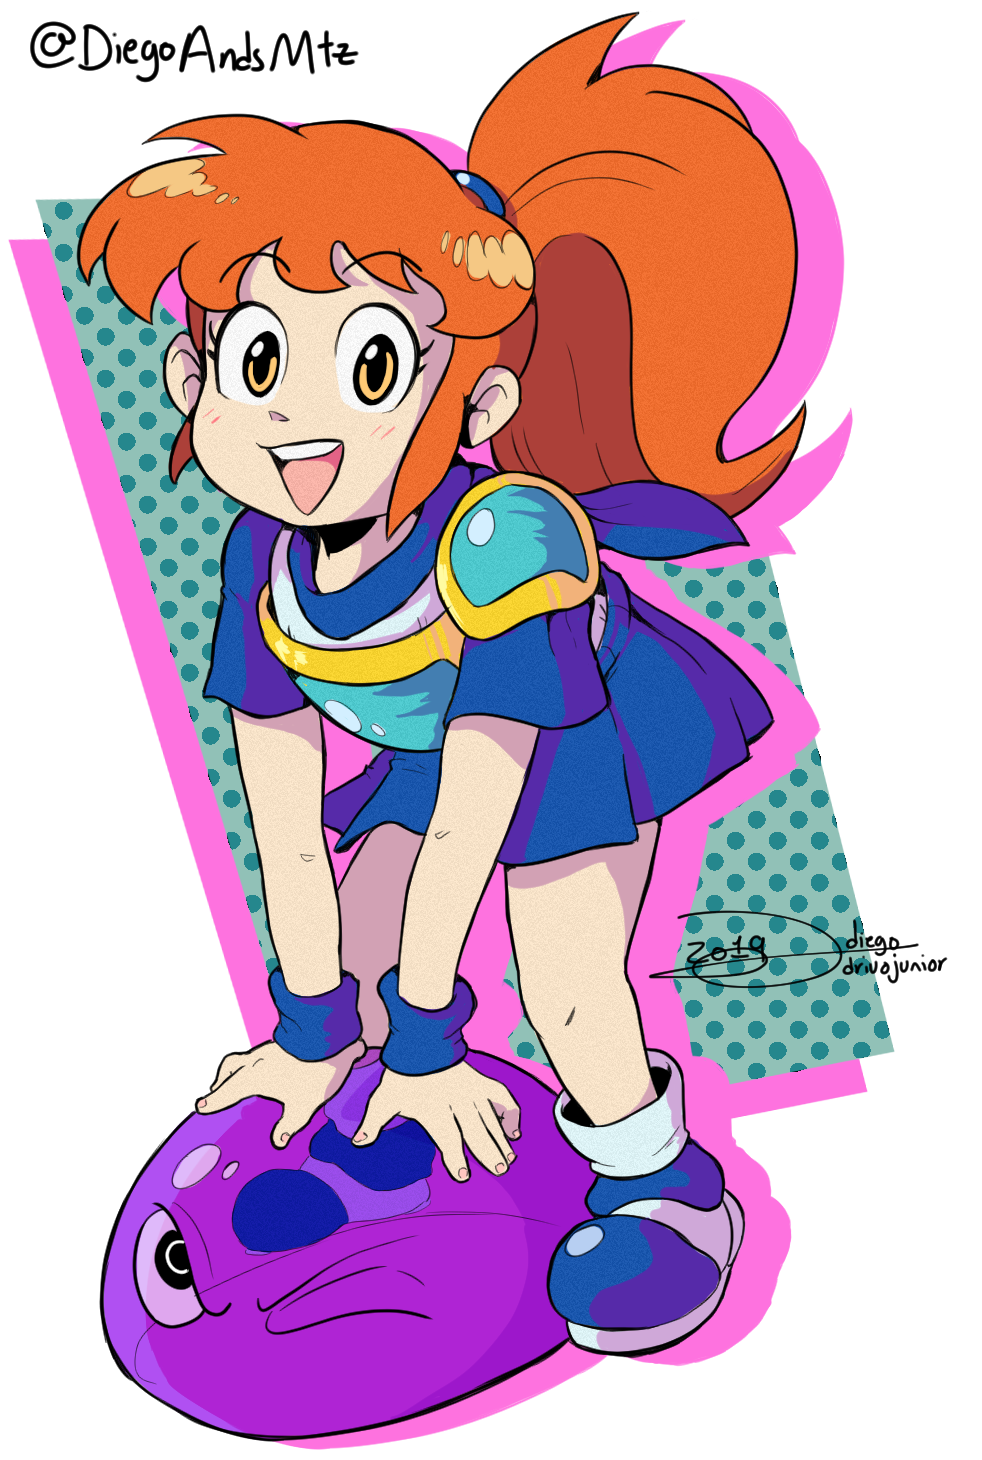 Arle Nadja By Drivojunior On Deviantart Its meant for human players so dont expect the ai to do. arle nadja by drivojunior on deviantart